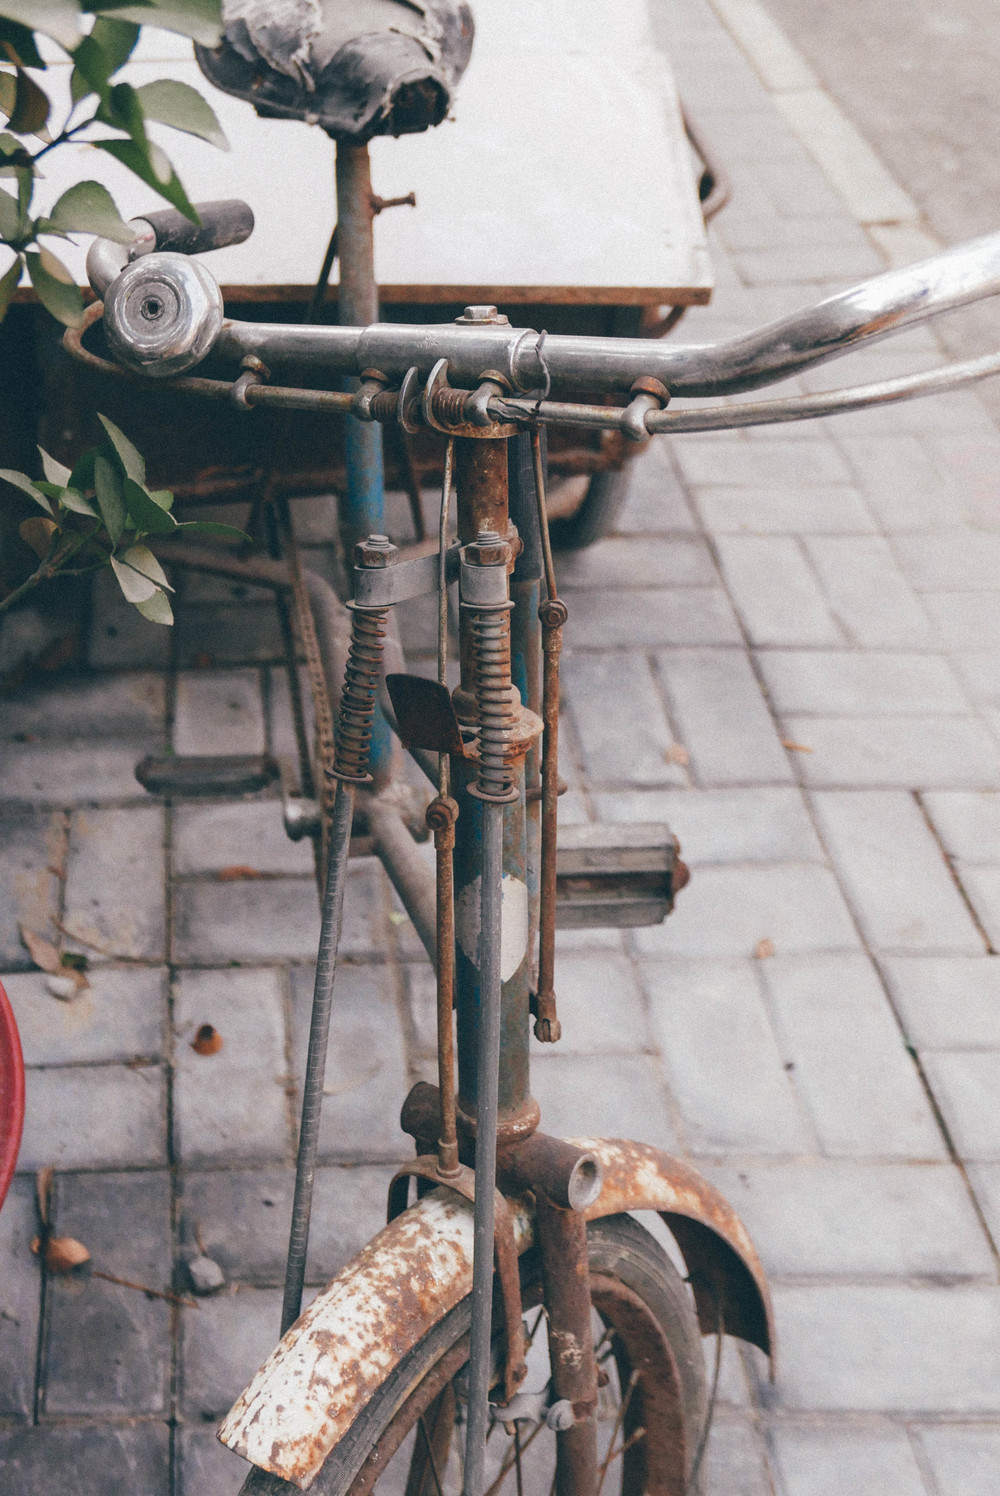 A well-loved bicycle.